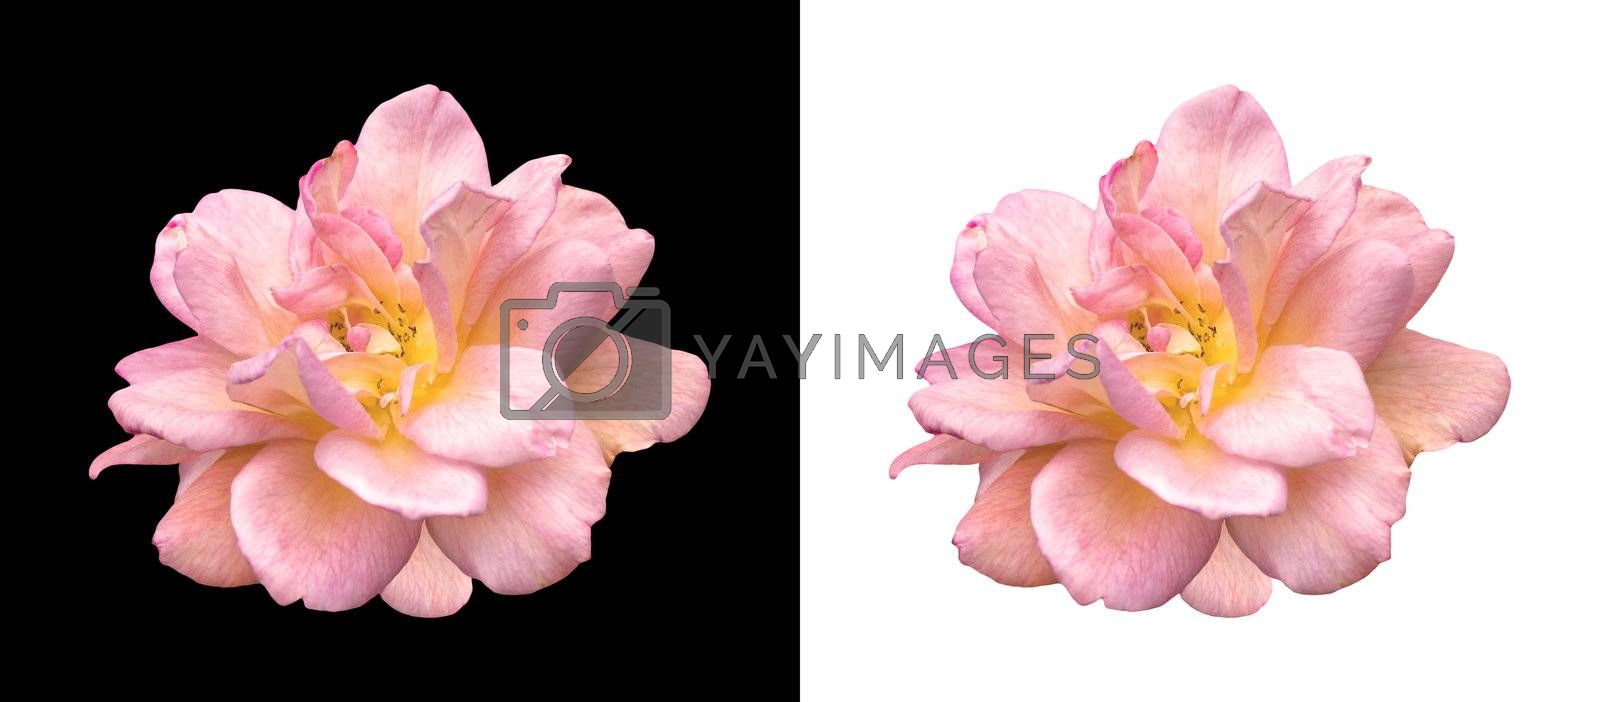 pink rose over black and white isolated backgrounds